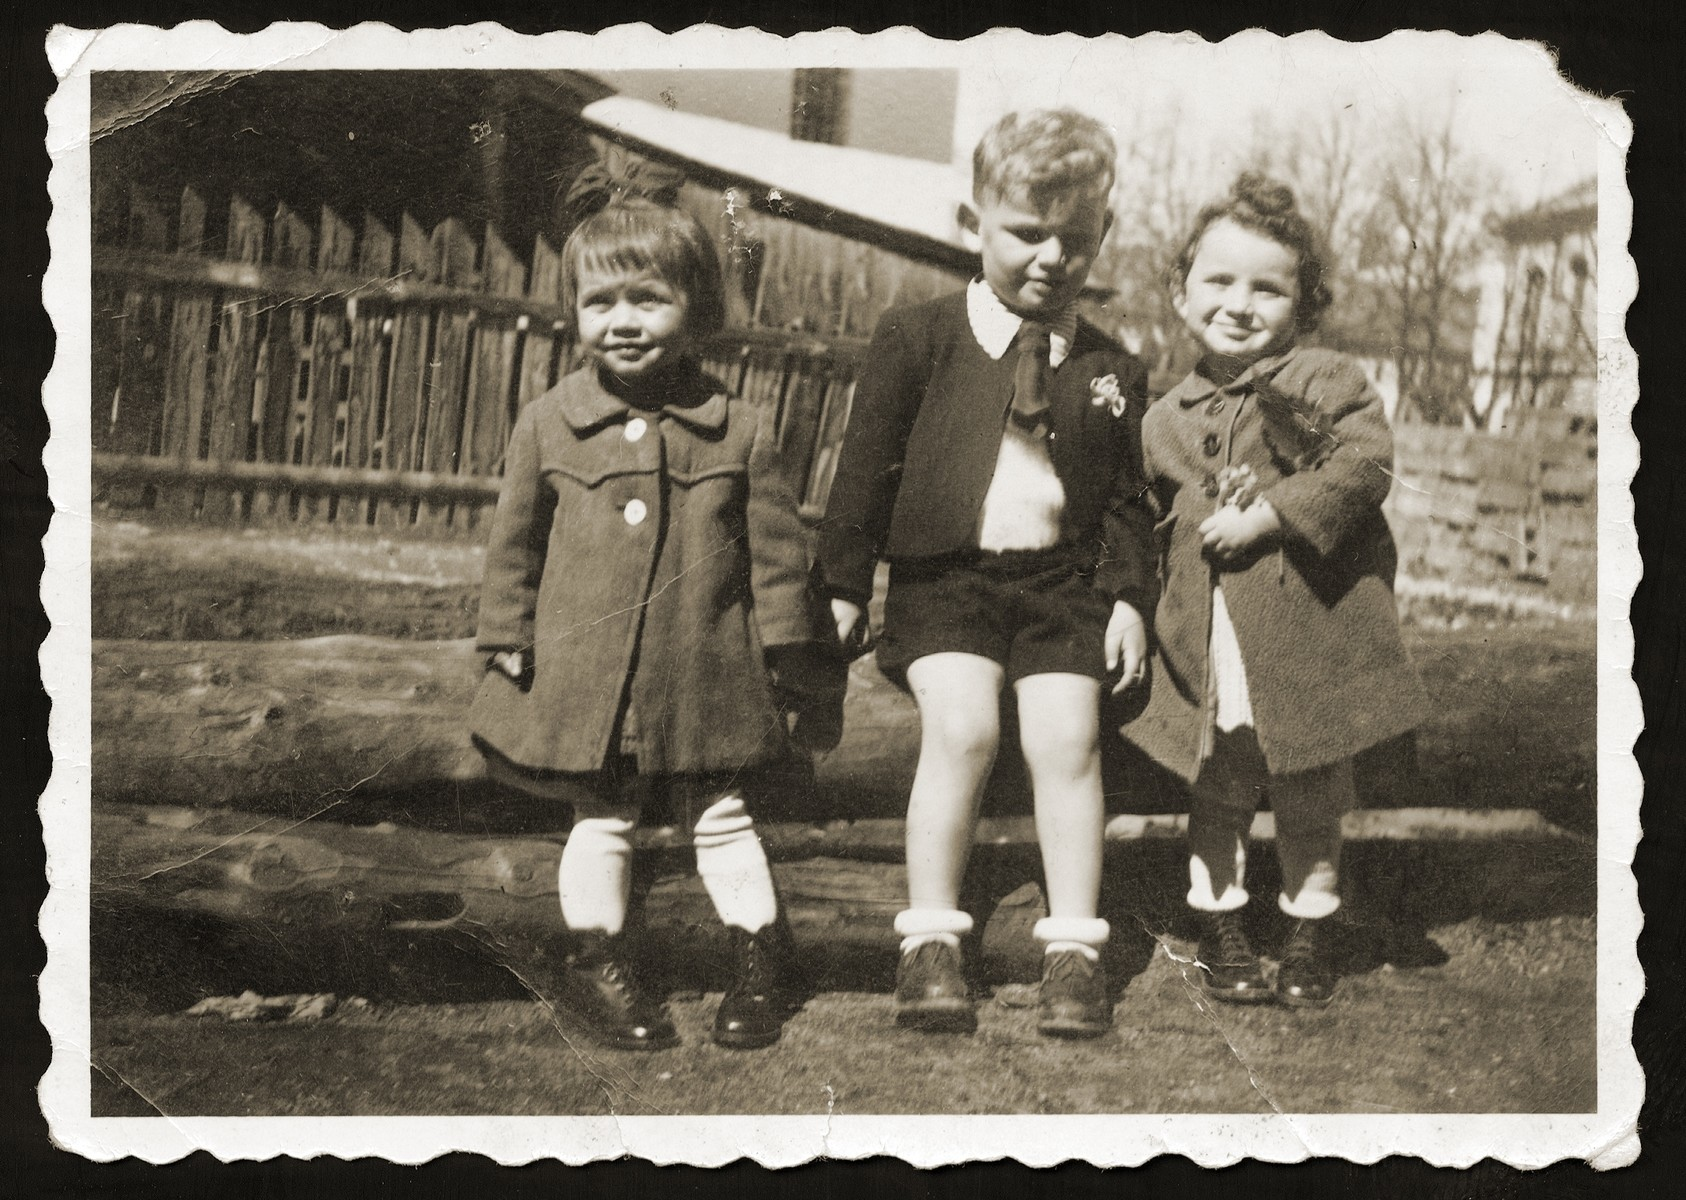 Three young children pose outside in a yard in Nemecka Lupka shortly before two of them were deported to Theresienstadt.  Pictured from right to left are Denise Elbert, Egon Gal and their non-Jewish friend, Viola.